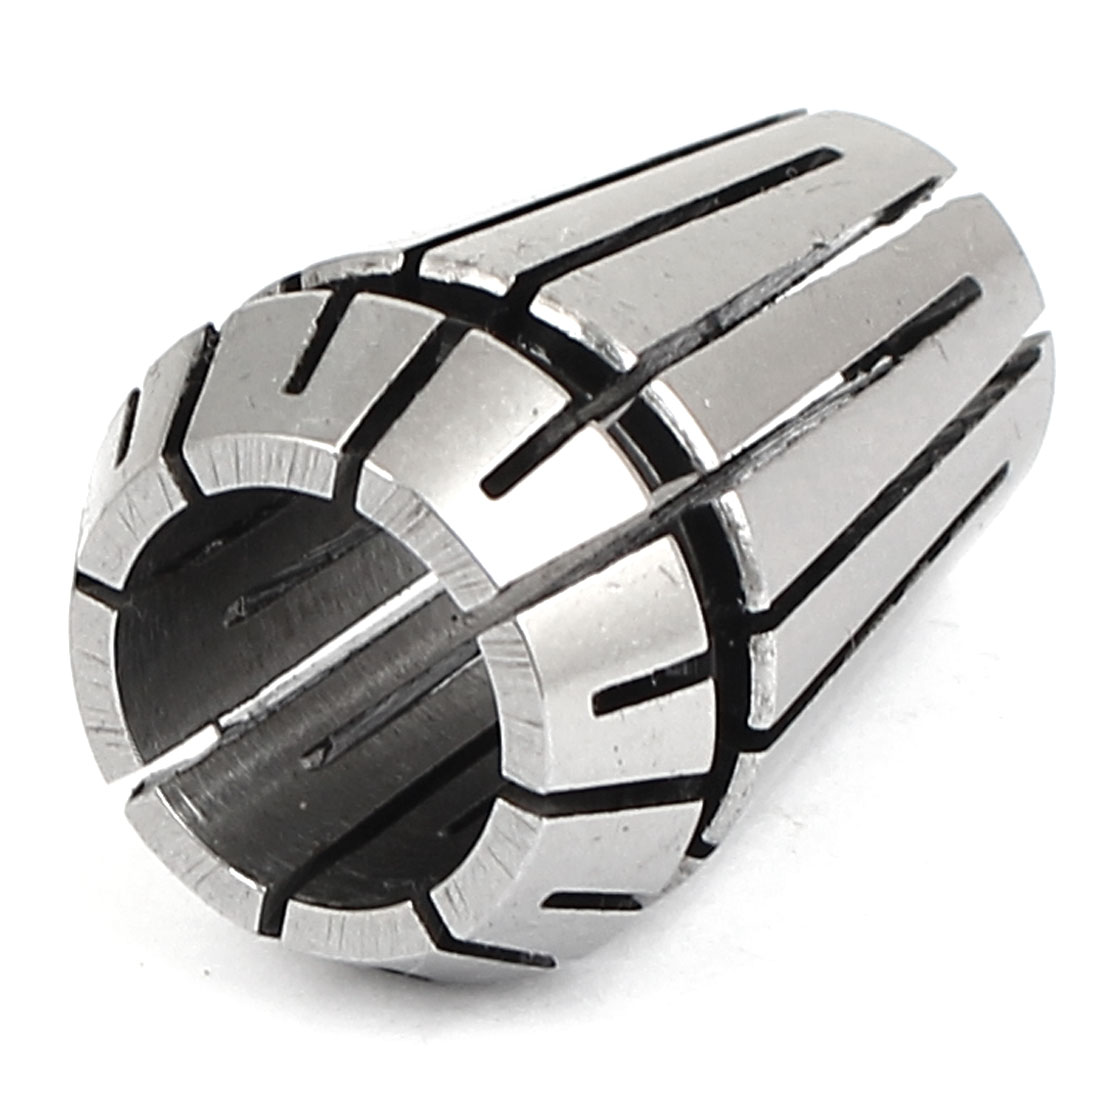 ER20 13mm Clamping Dia CNC Engraving Milling Machine Spring Collet